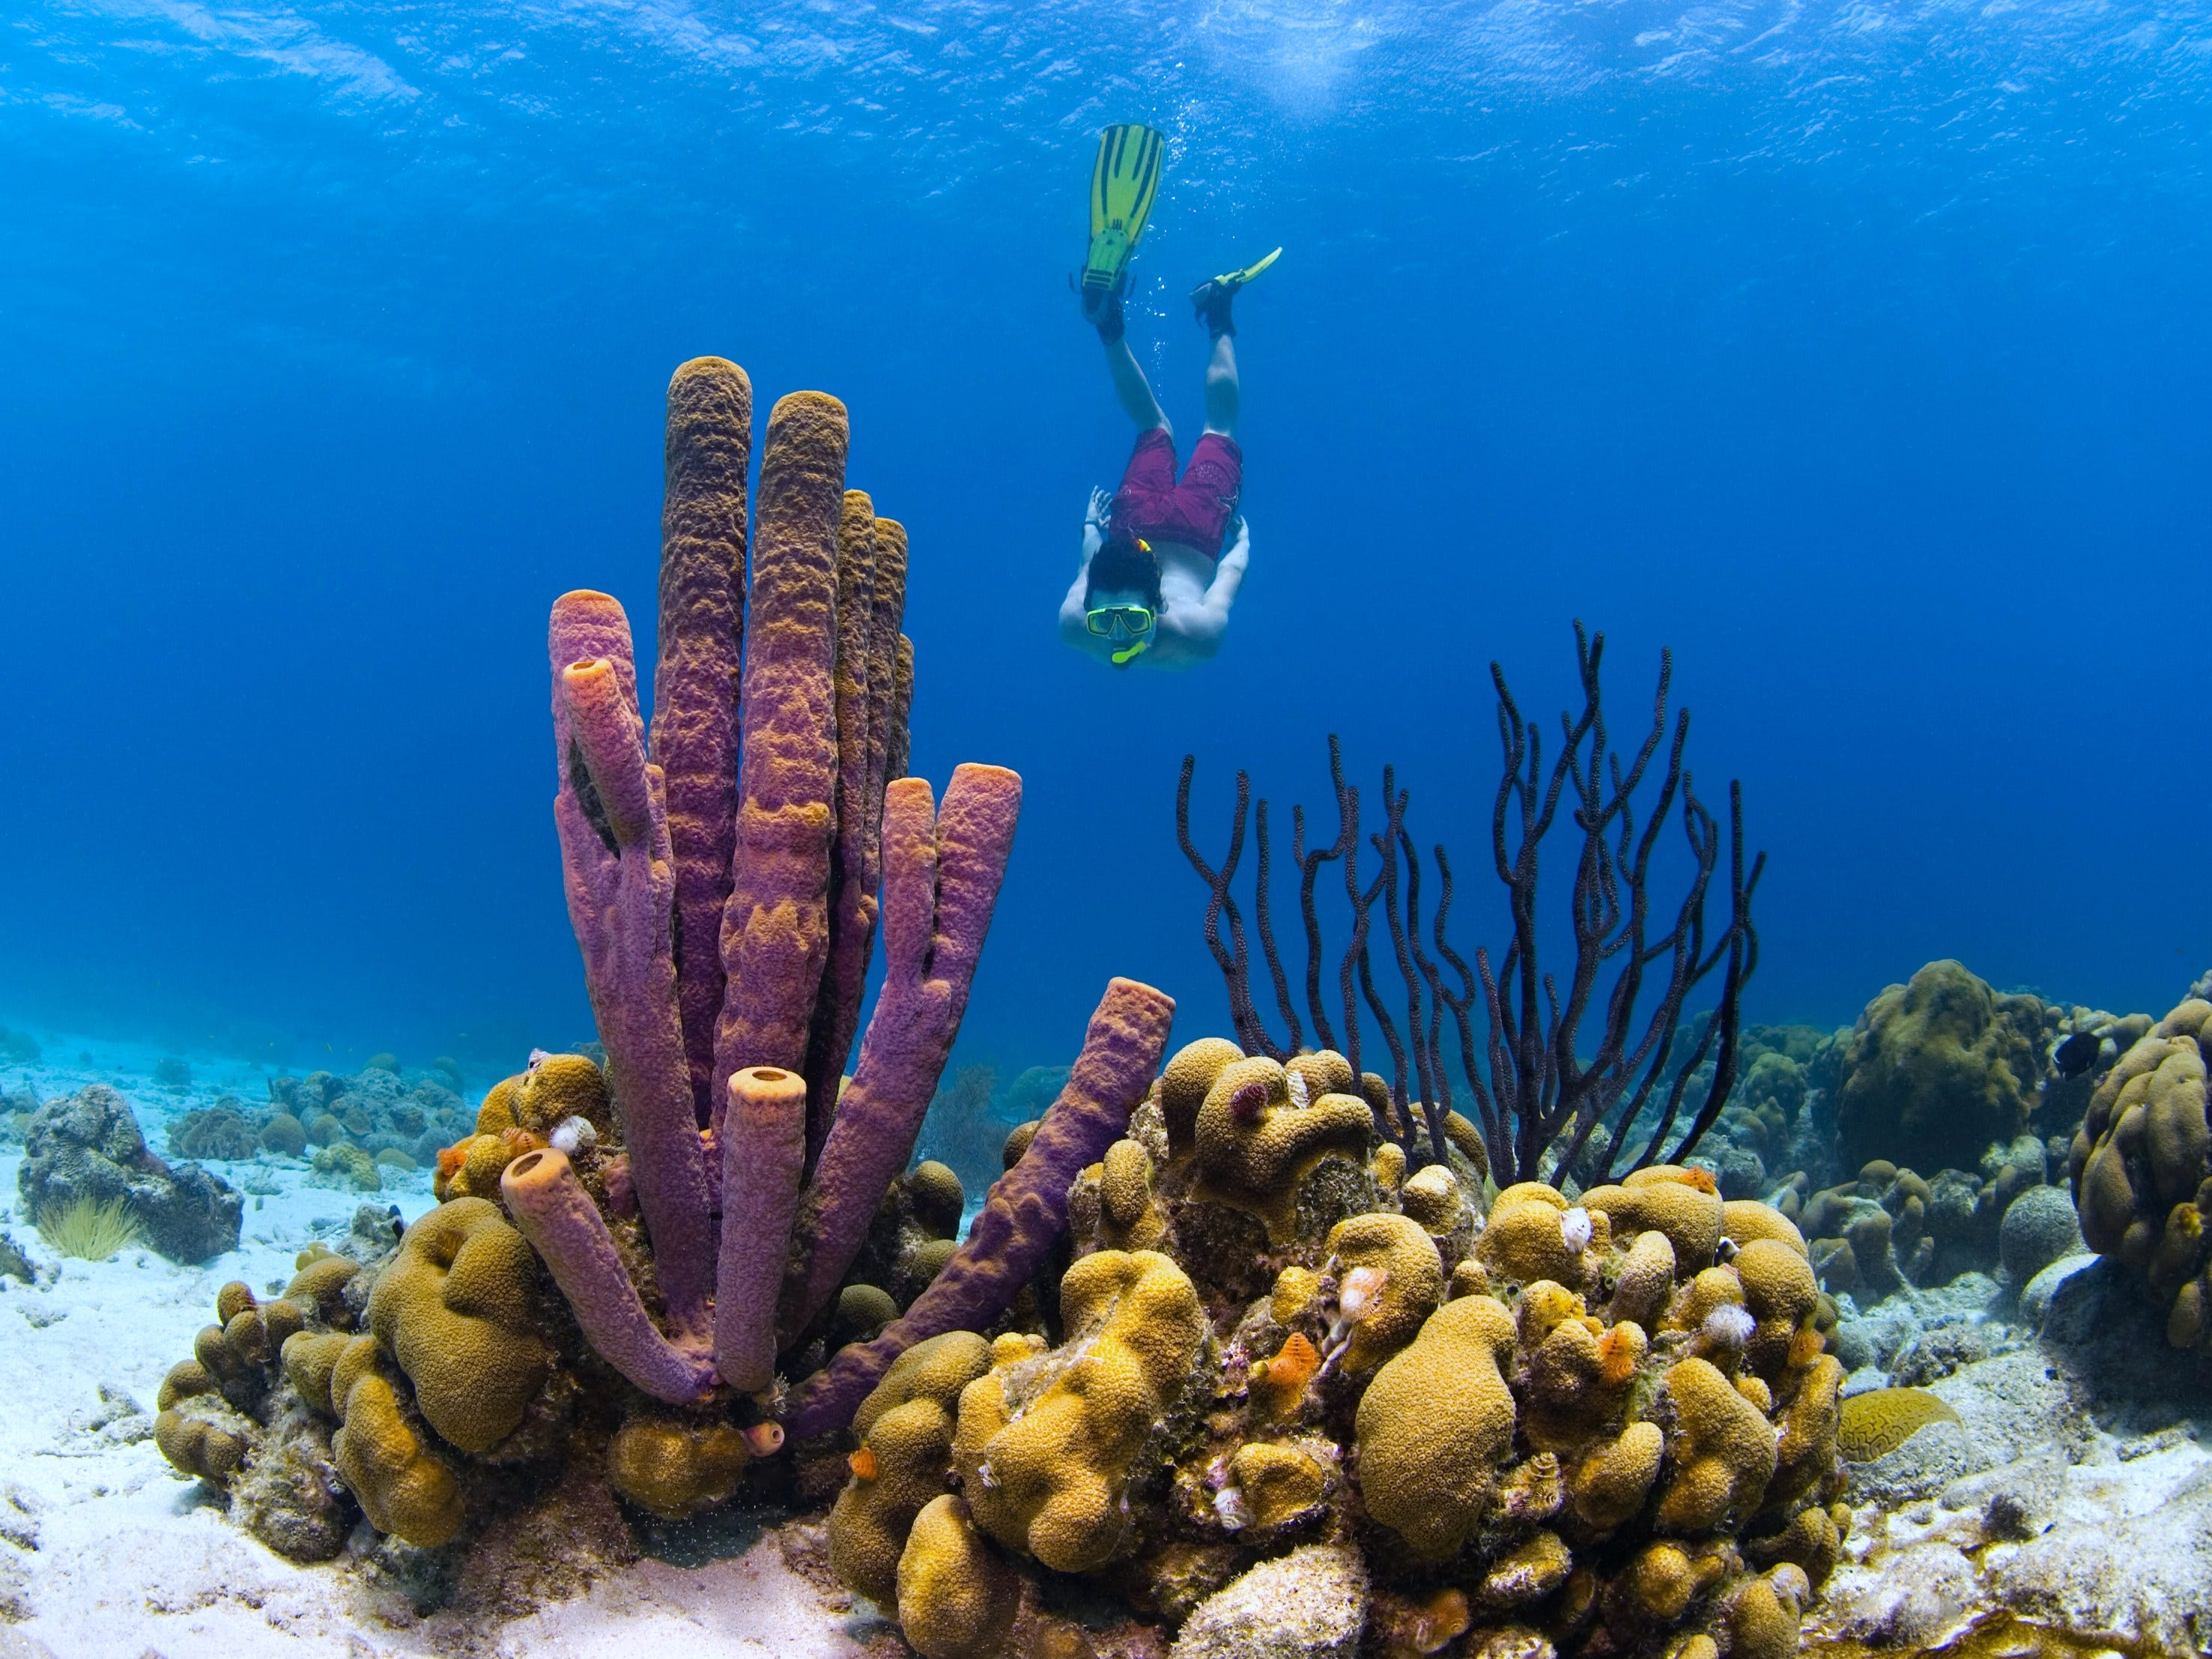 For the more adventurous, swim 10 minutes out to the reef and you'll meet up with purple coral sandwiched between maize-colored plants, teensy striped fish and friendly eagle rays.